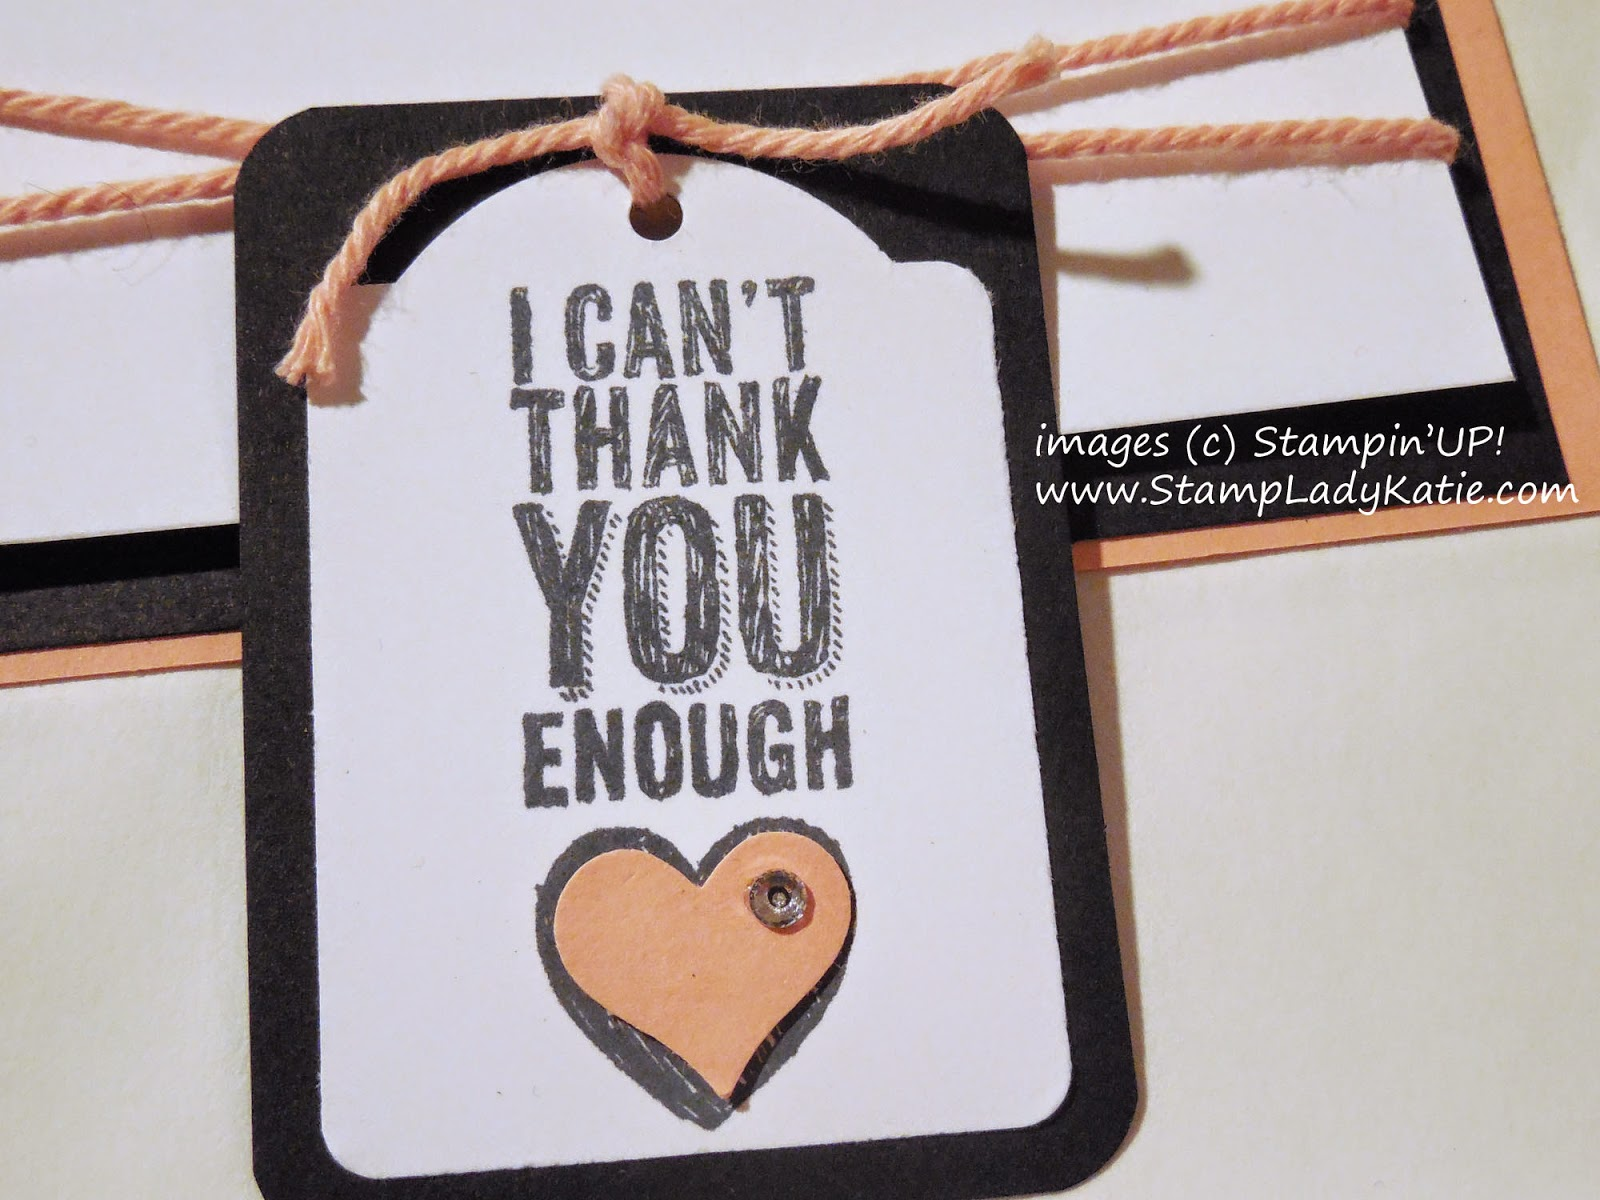 Tag made with Stampin'UP!'s Note Tag Punch and the stamped image from Chalk Talk